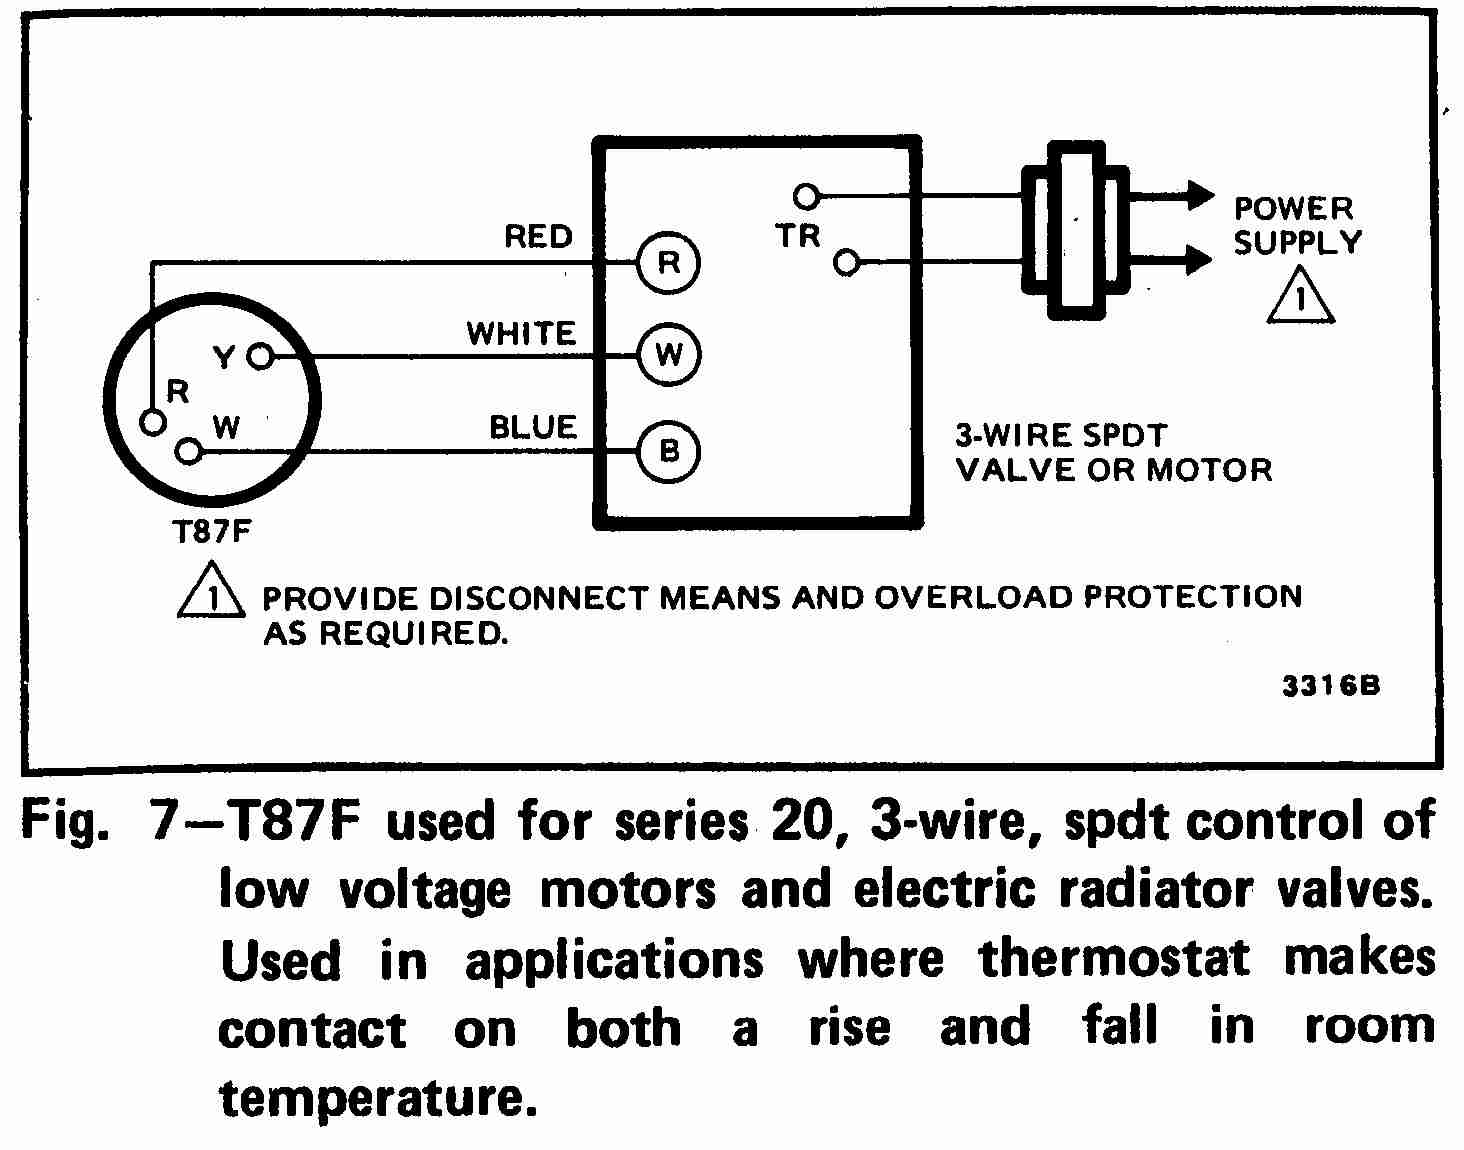 DC661 American Standard Thermostat Wiring Diagram 2000 ... on american standard transformer, american srandard thermostat wiring diagram, american standard thermostat cover, american standard thermostat acont802as32daa, american standard water heater thermostat, american standard thermostat reset, american standard thermostat battery, american standard blower relay, american standard thermostat manuals, american standard thermostat installation, american standard thermostat parts, american standard thermostat programming, american standard thermostat control, american standard heat pump thermostat, american standard thermocouple, american standard heating, american standard programmable thermostat,